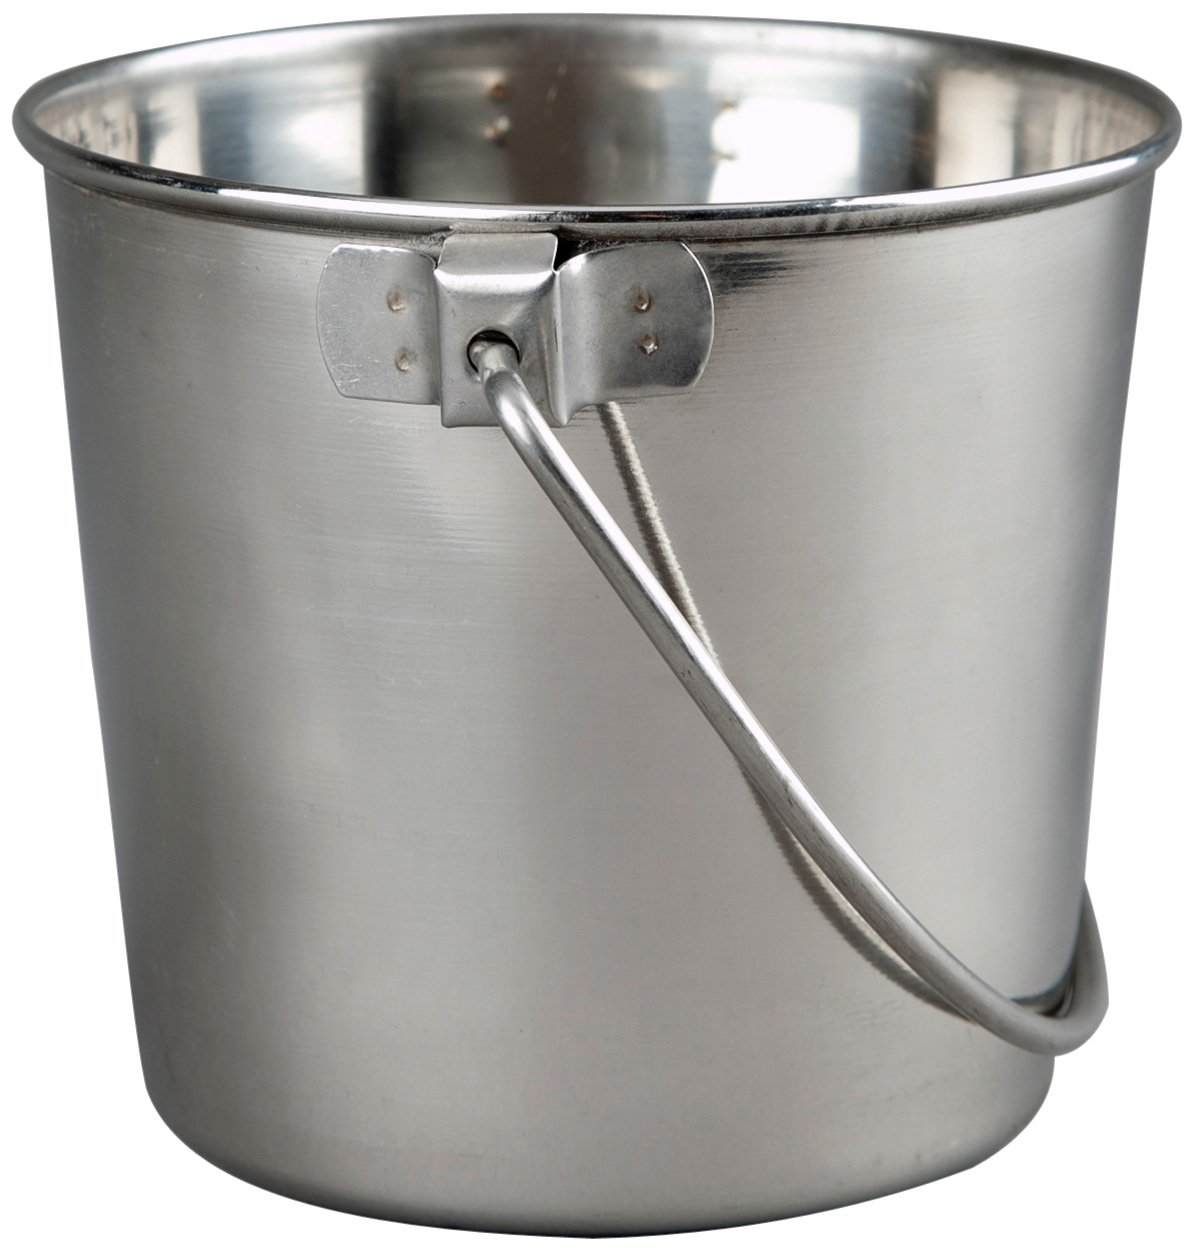 Advance Pet Products Heavy Stainless Steel Round Bucket